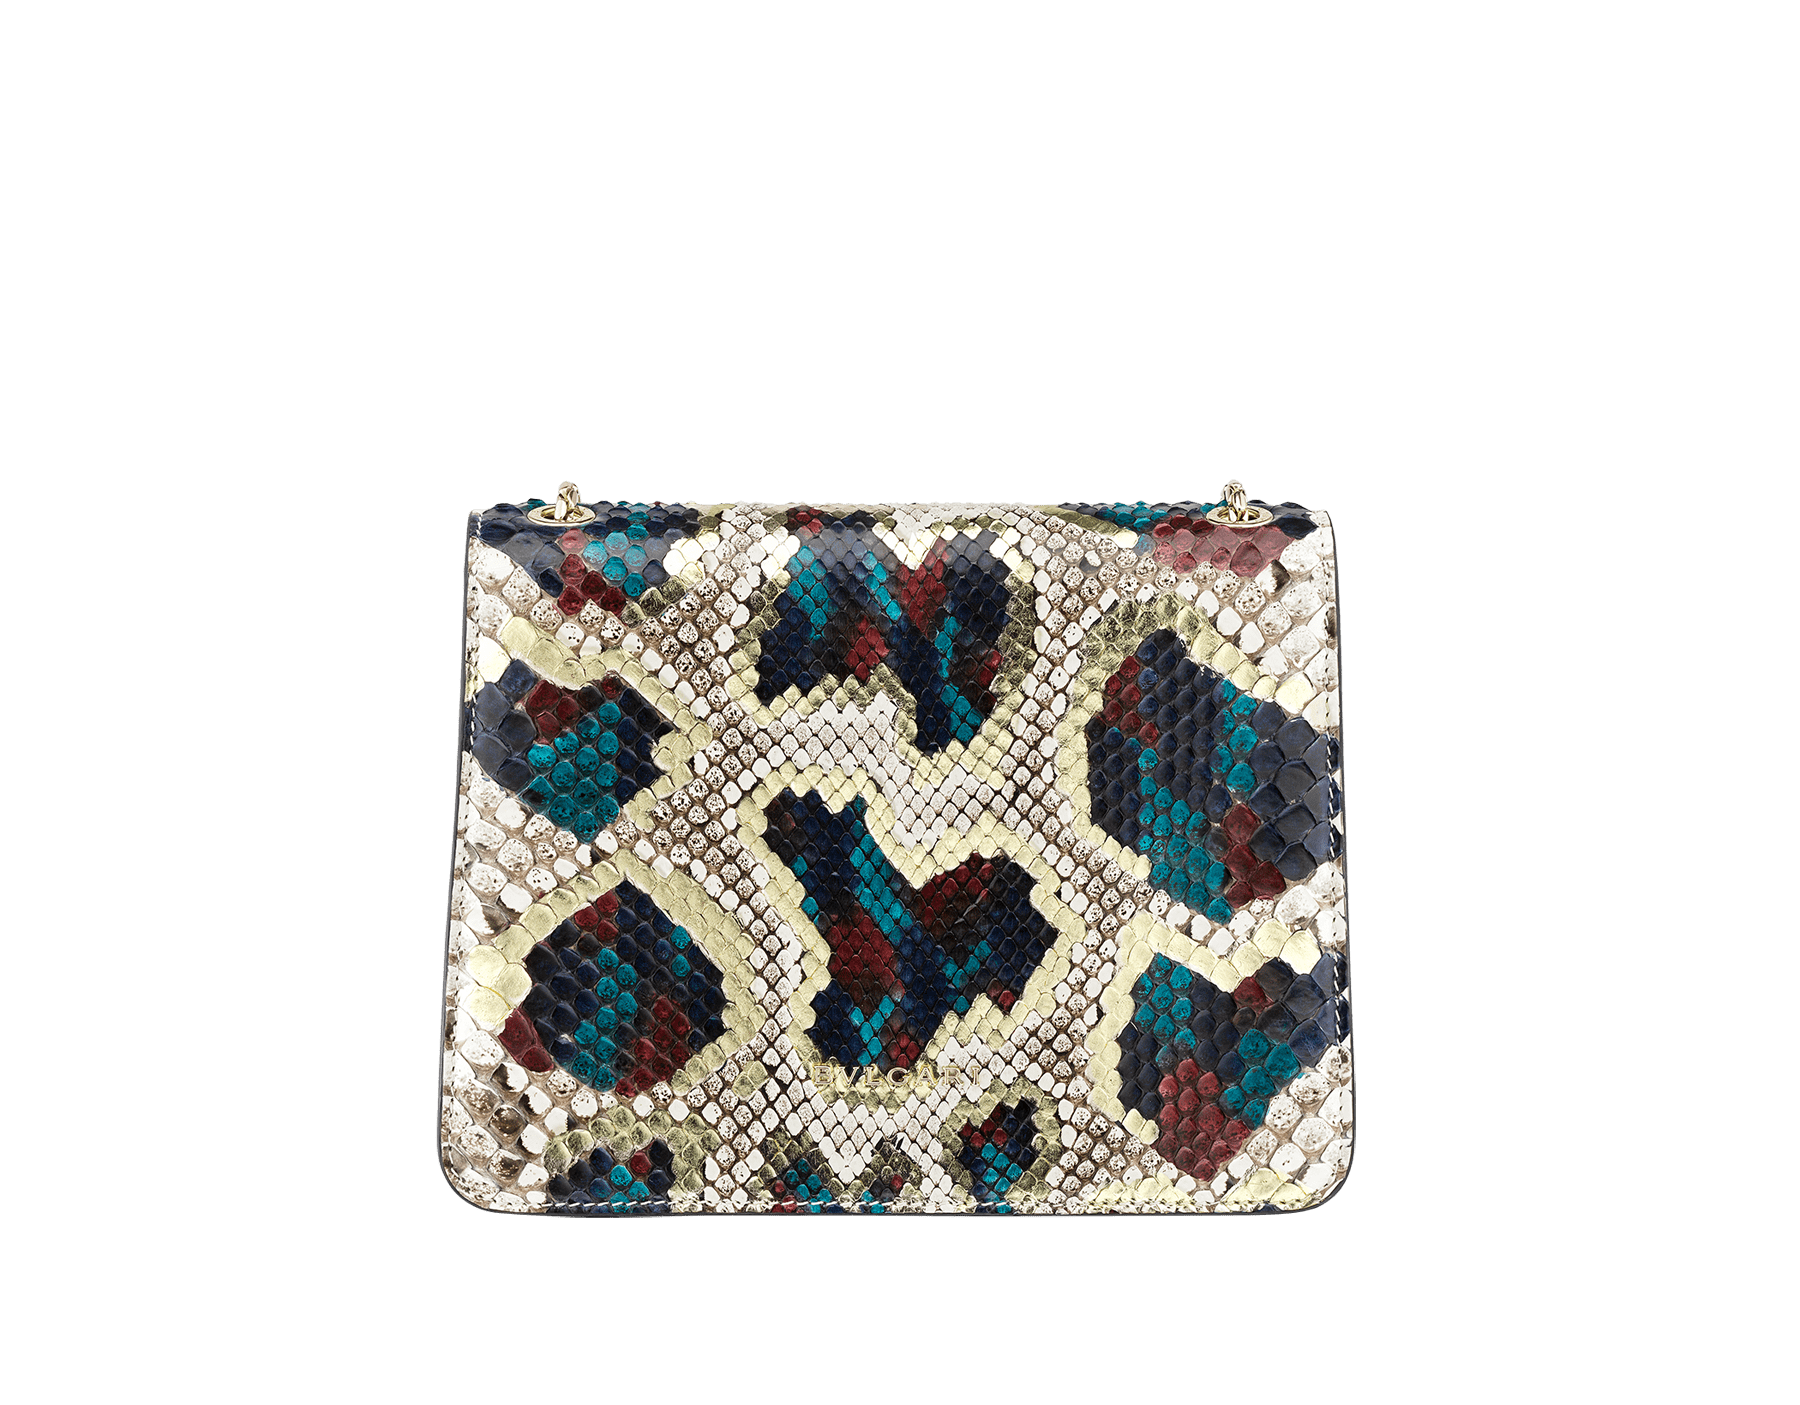 Sac à bandoulière Serpenti Forever en python « Magic Chromaline » multicolore. Fermoir emblématique Serpenti en laiton doré et émail noir et blanc avec yeux en onyx. 422-Pc image 3